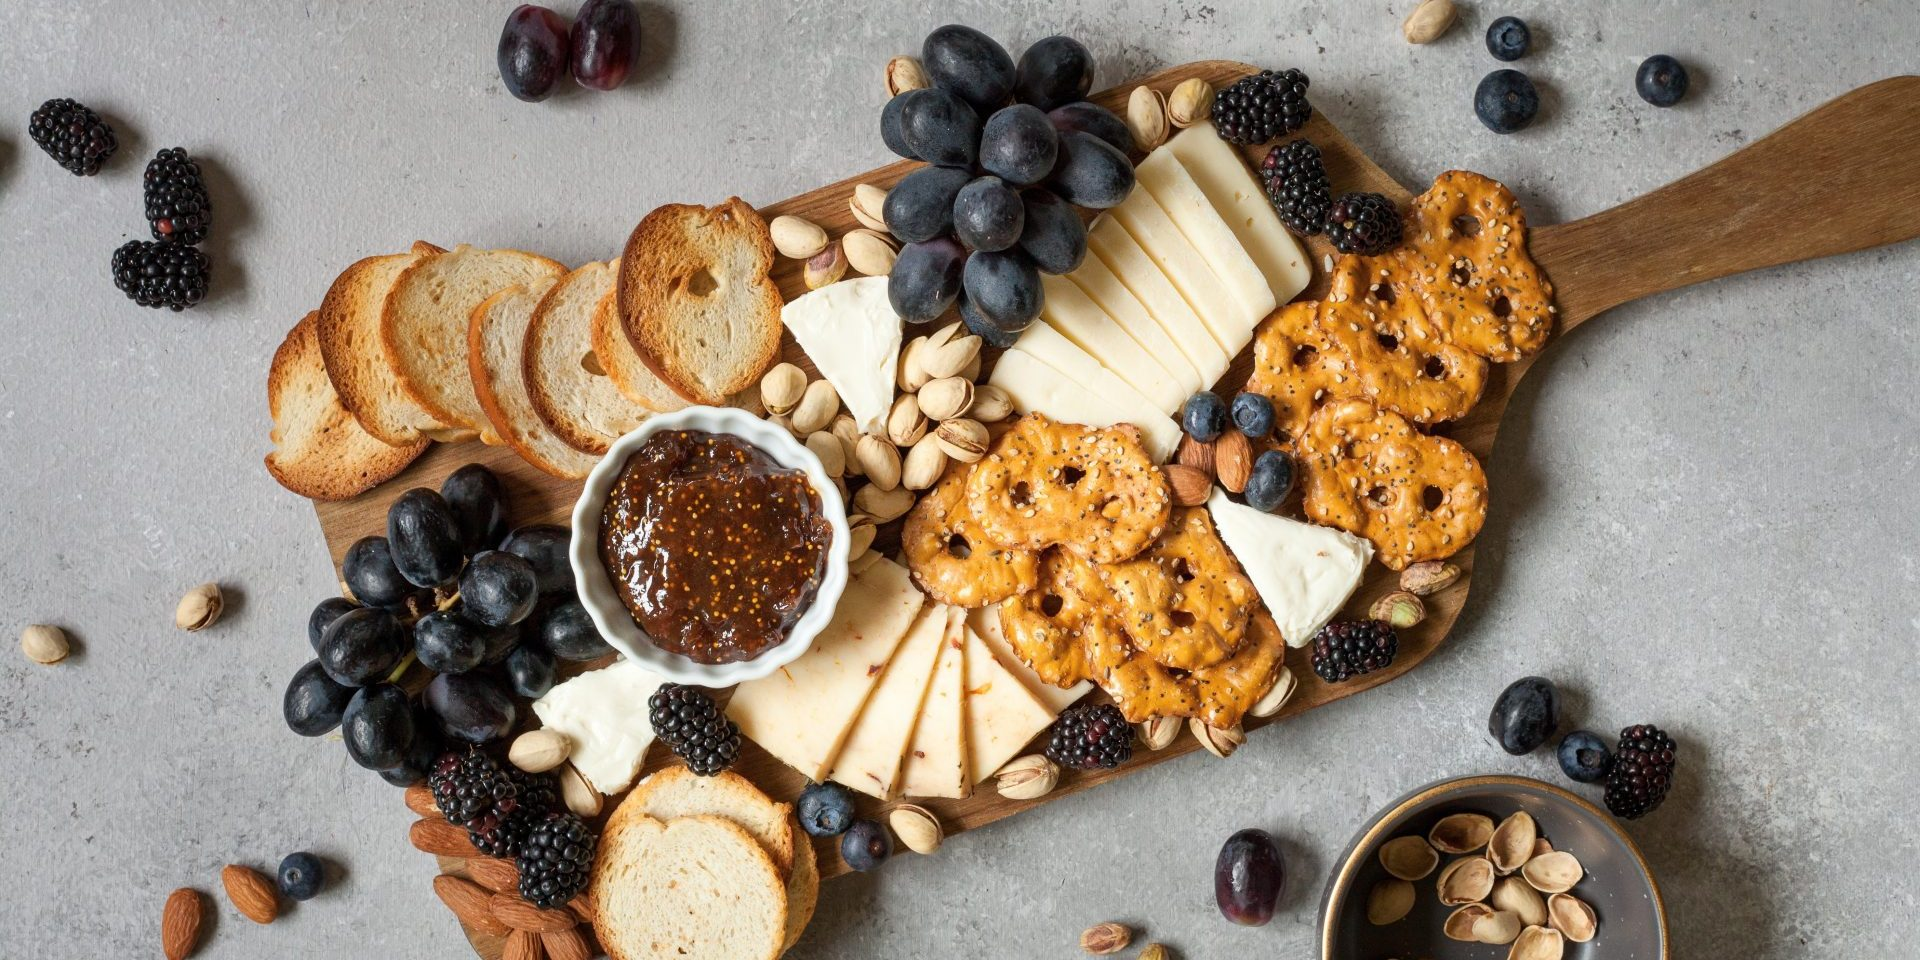 Cheese, fruit, bread platter